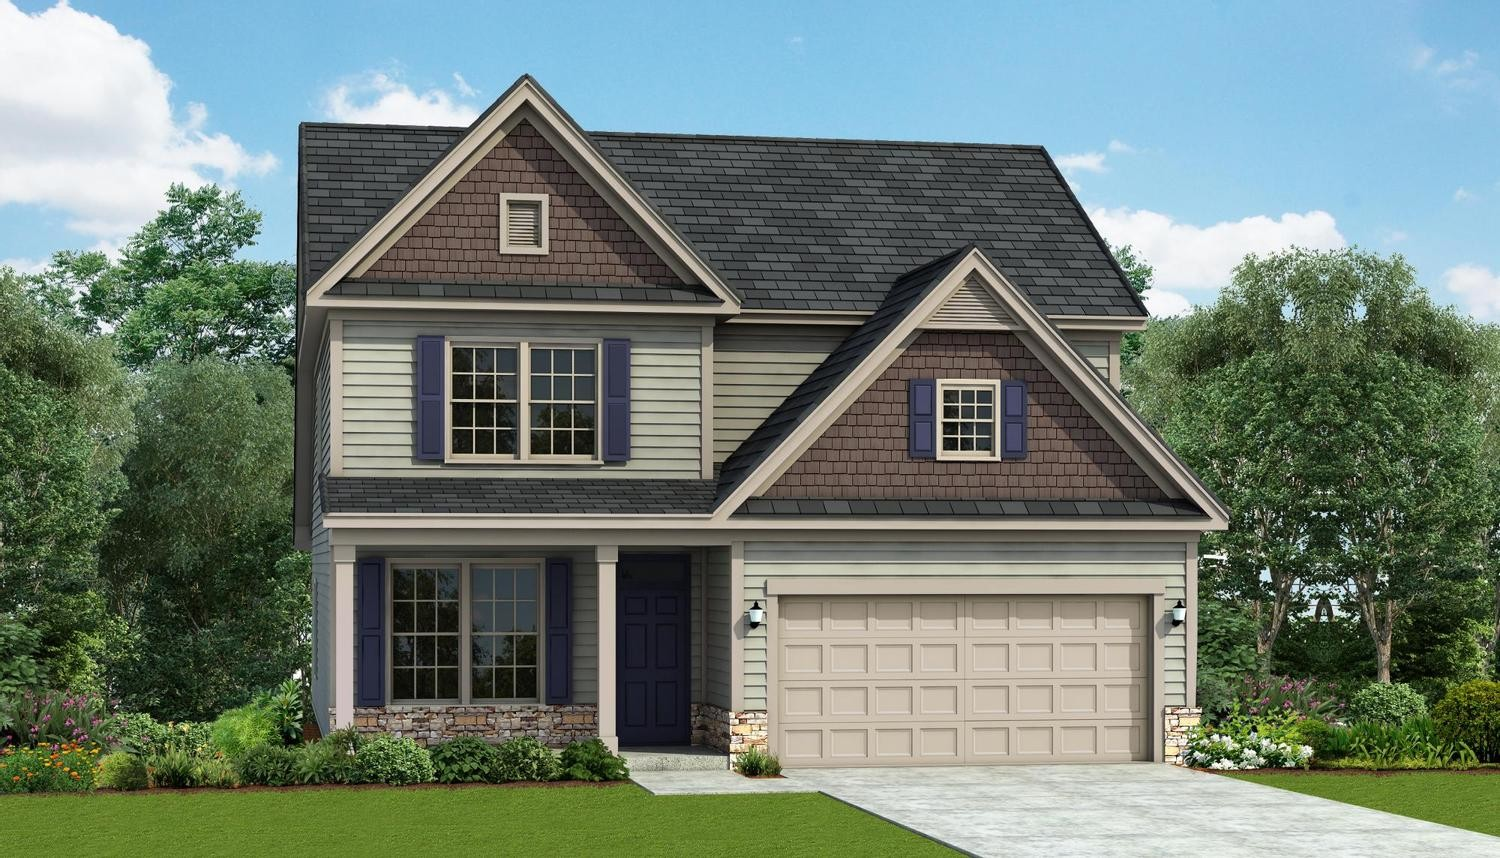 Move In Ready New Home In Autumnwood Community